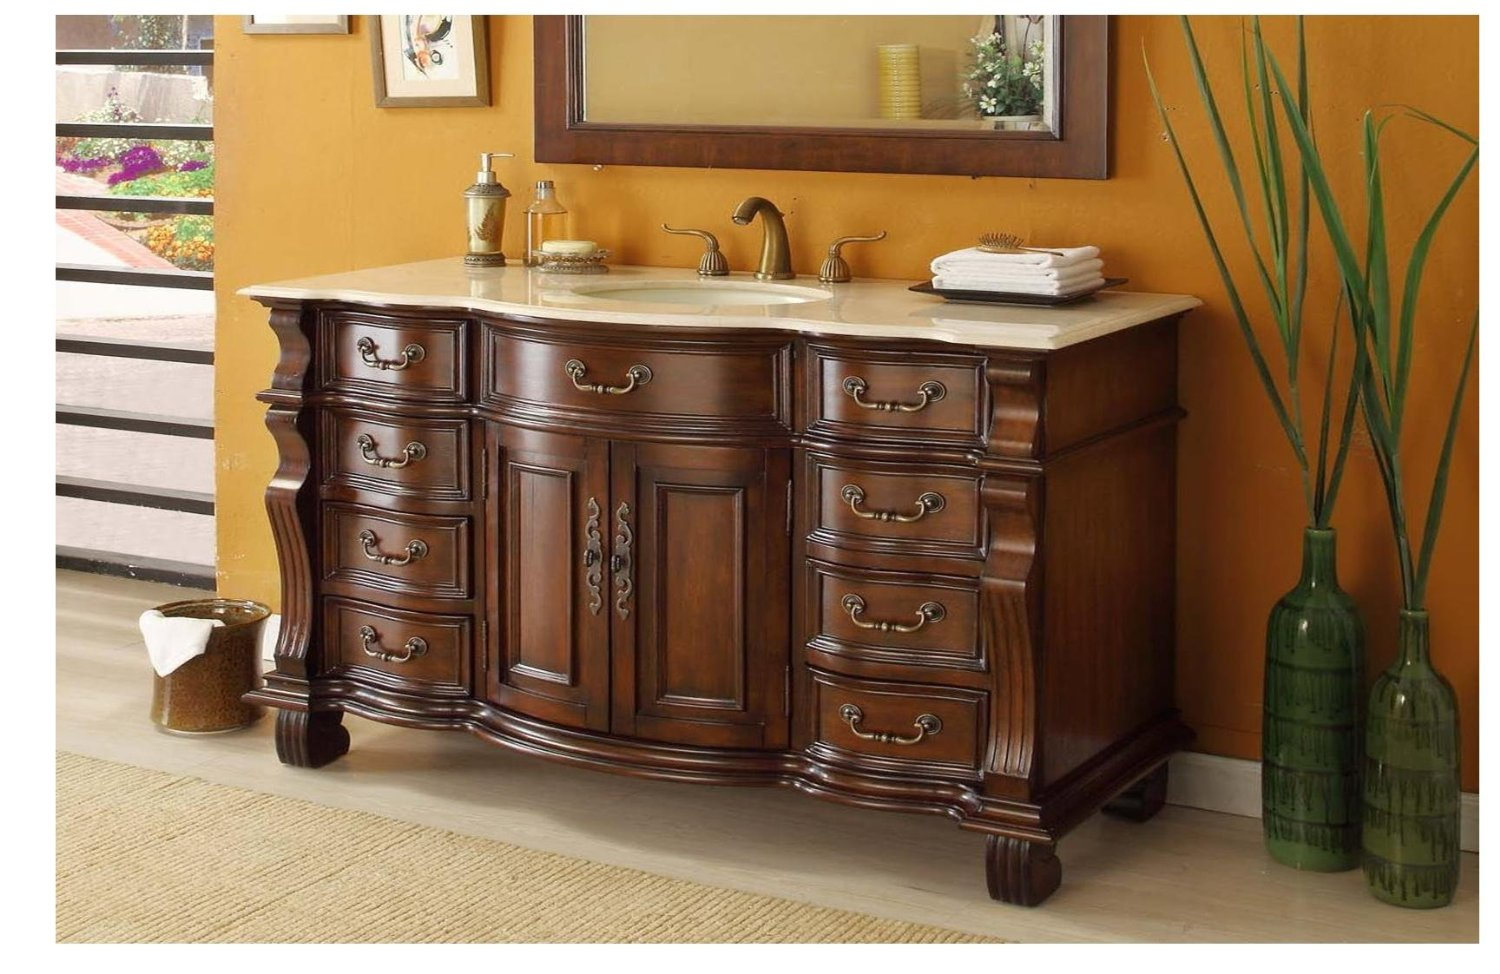 vintage bathroom vanity sink cabinets. antique brown wooden bathroom vanities with tops plus sink and faucet on  wheat ceramics floor matched Bathroom Inspiring Vanities With Tops For